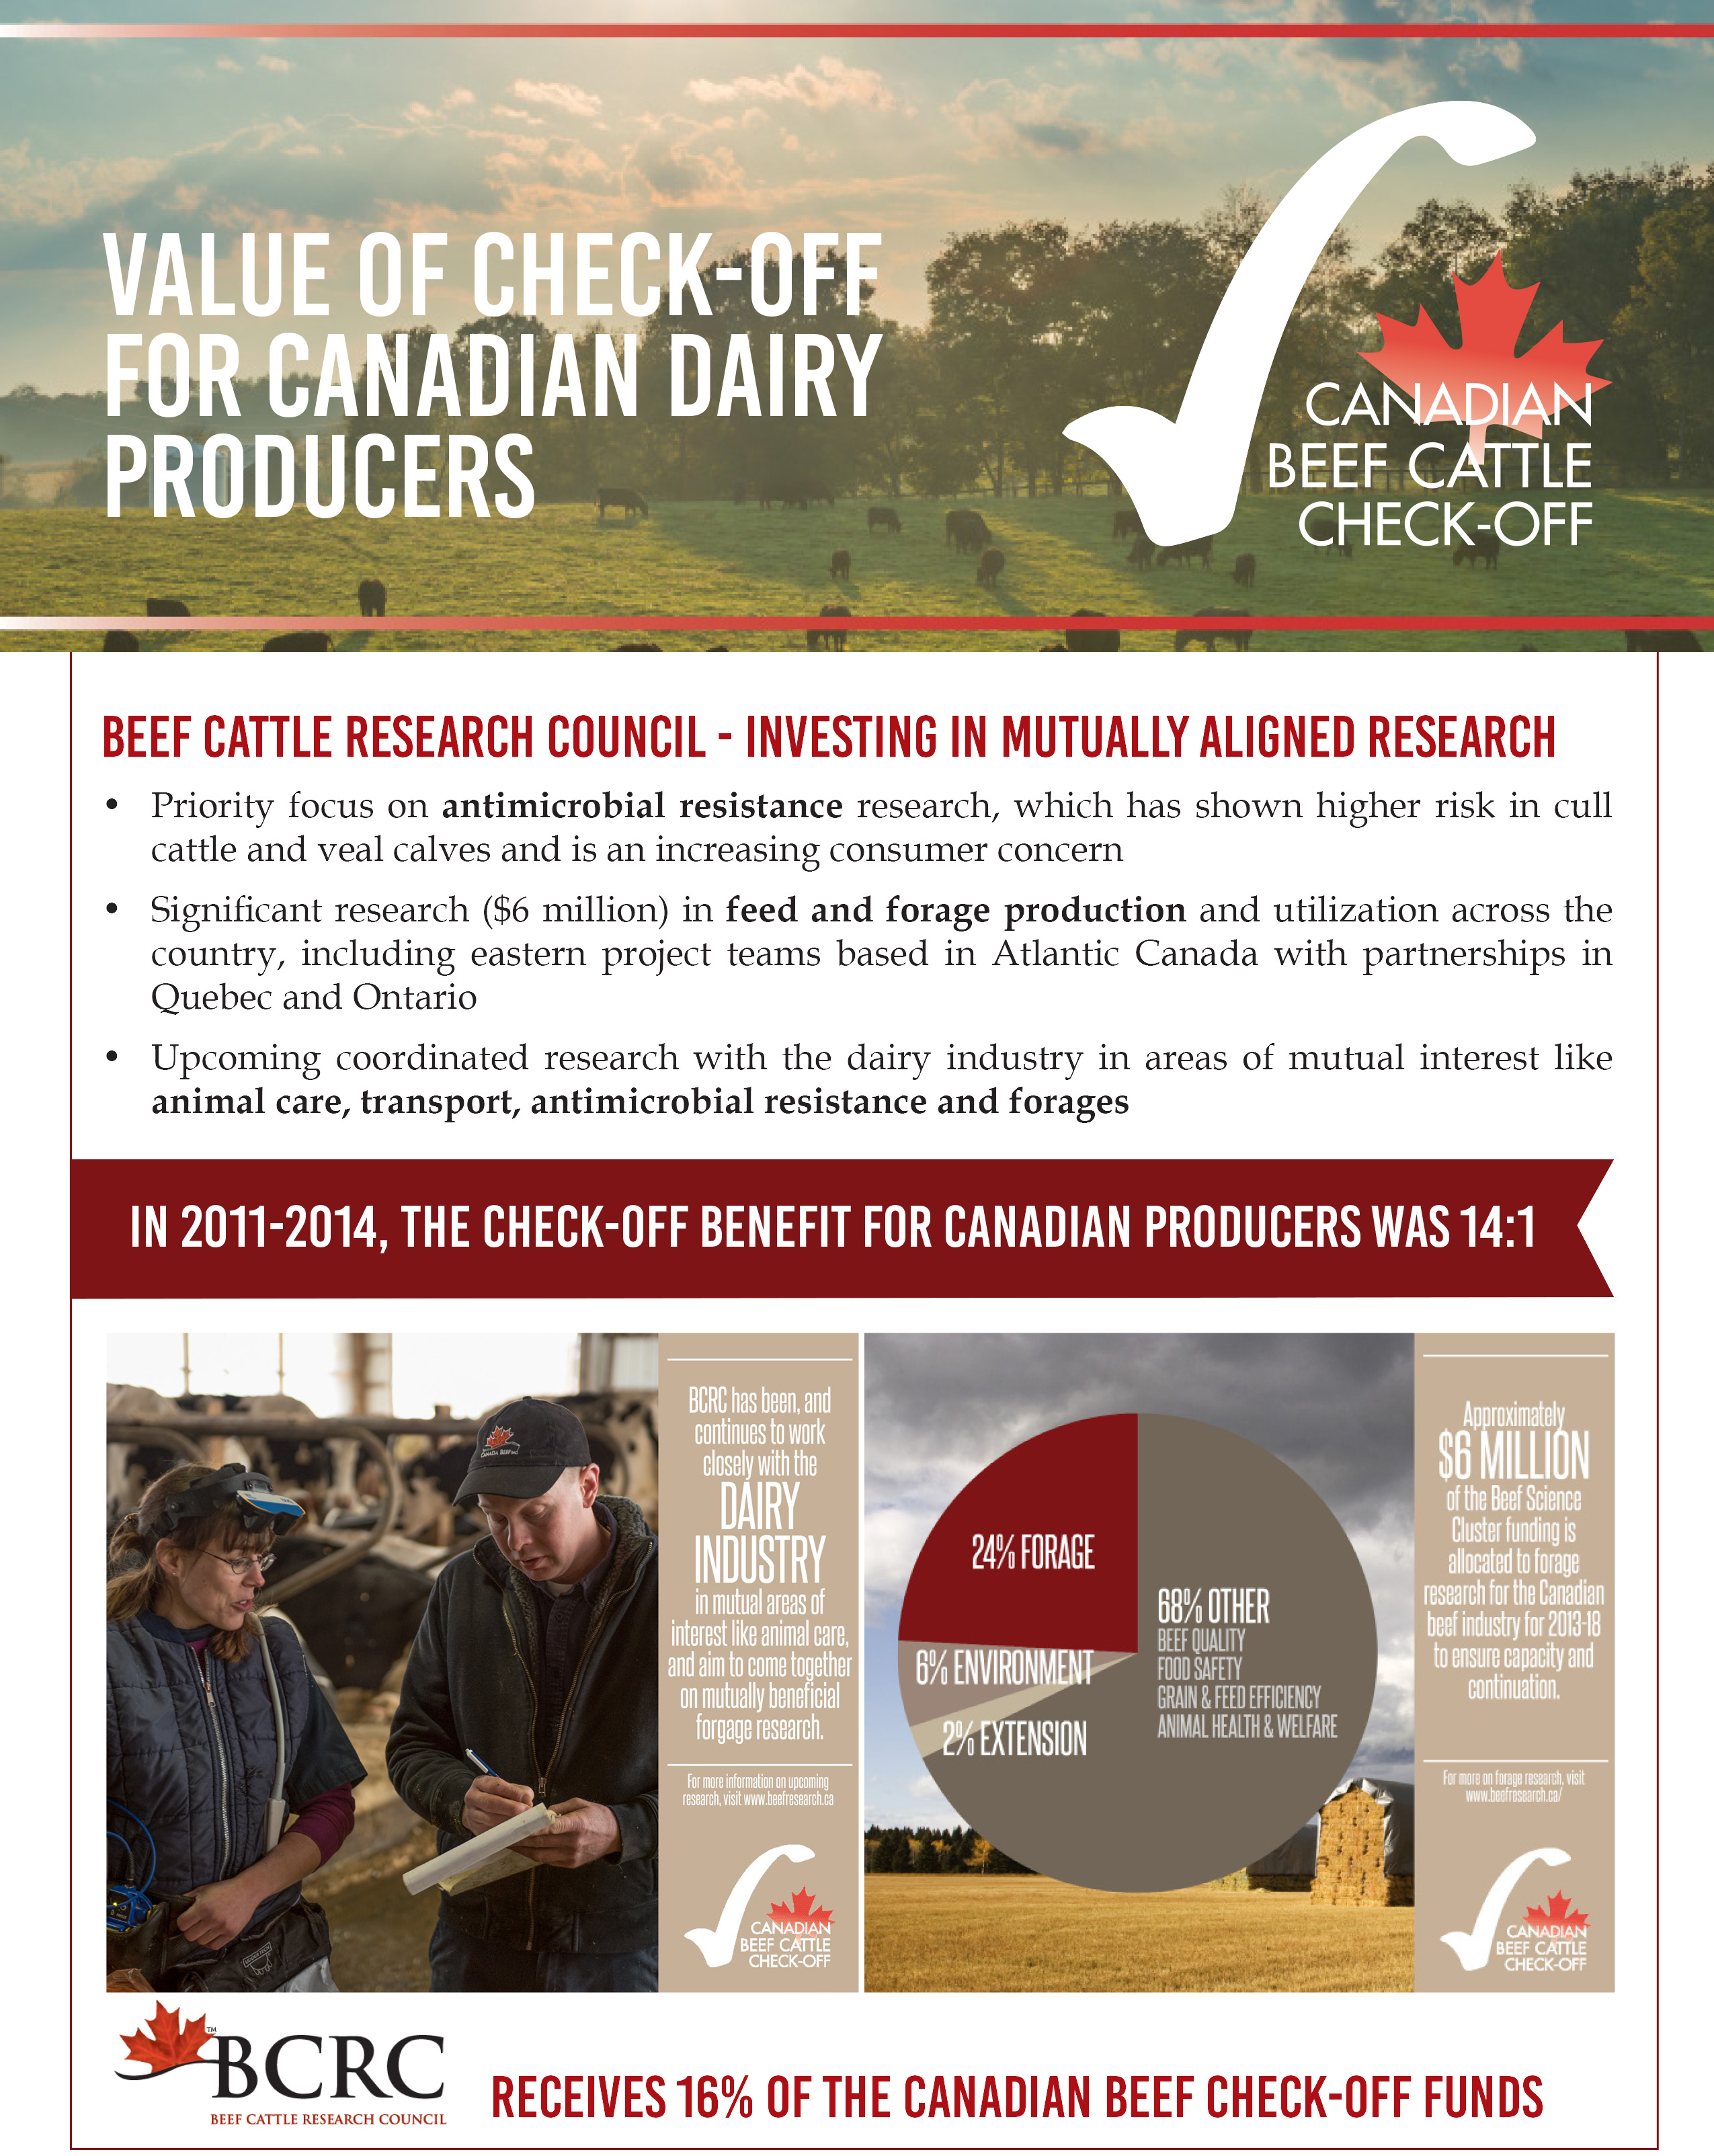 Value of check-off for canadian dairy producers